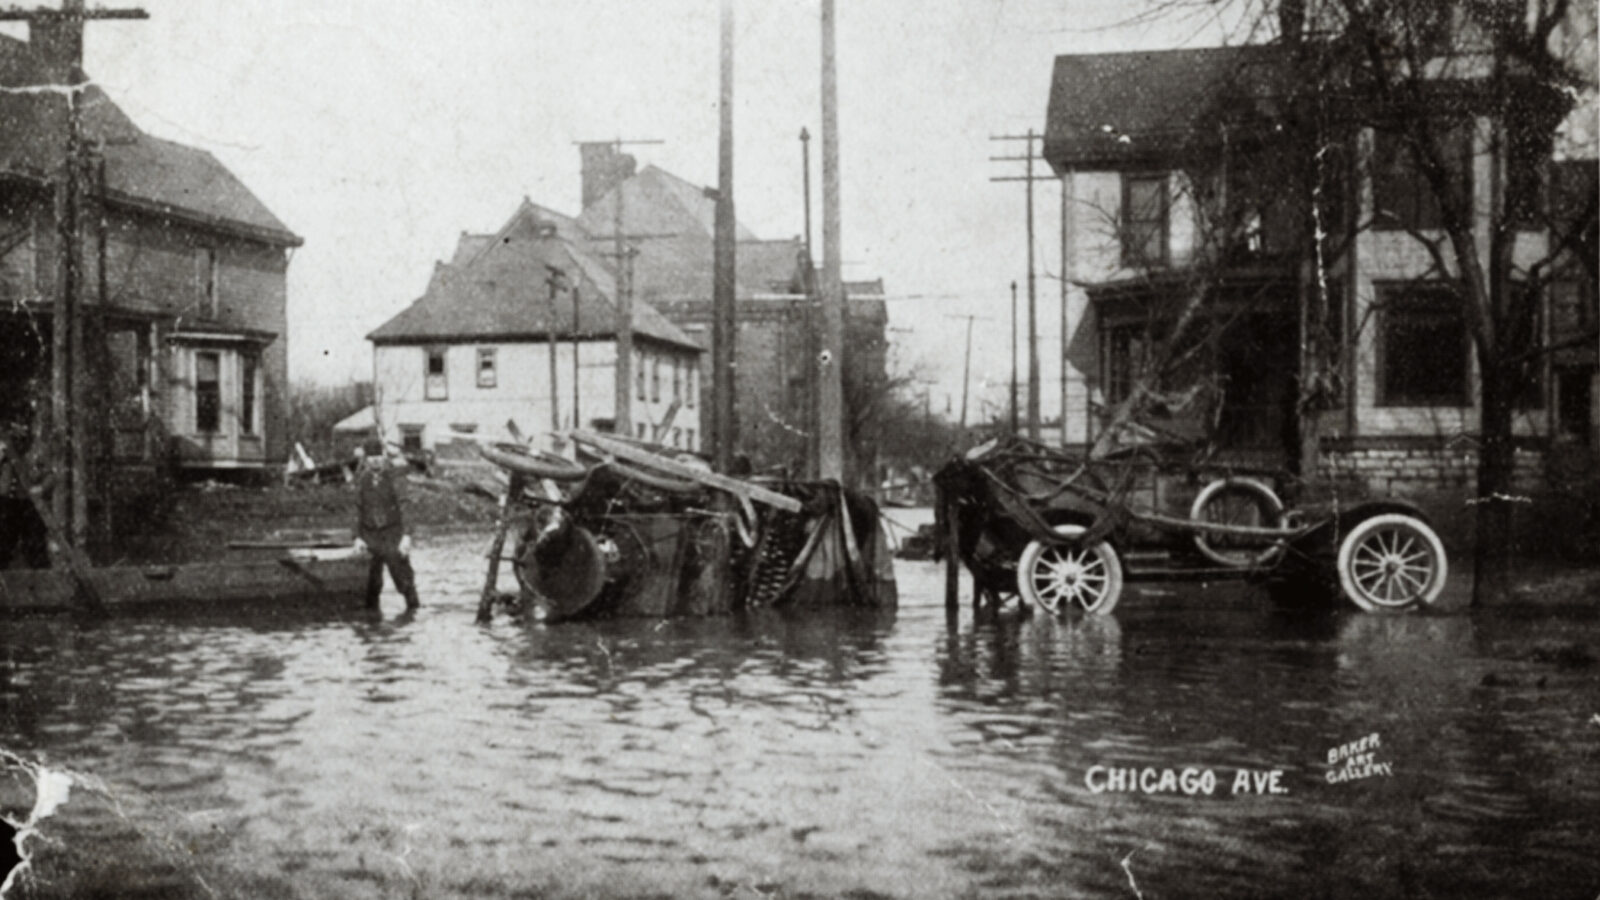 The Great Flood of 1913 exacted widespread damage in numerous Midwest cities, including Columbus, Ohio, as seen in this photo.